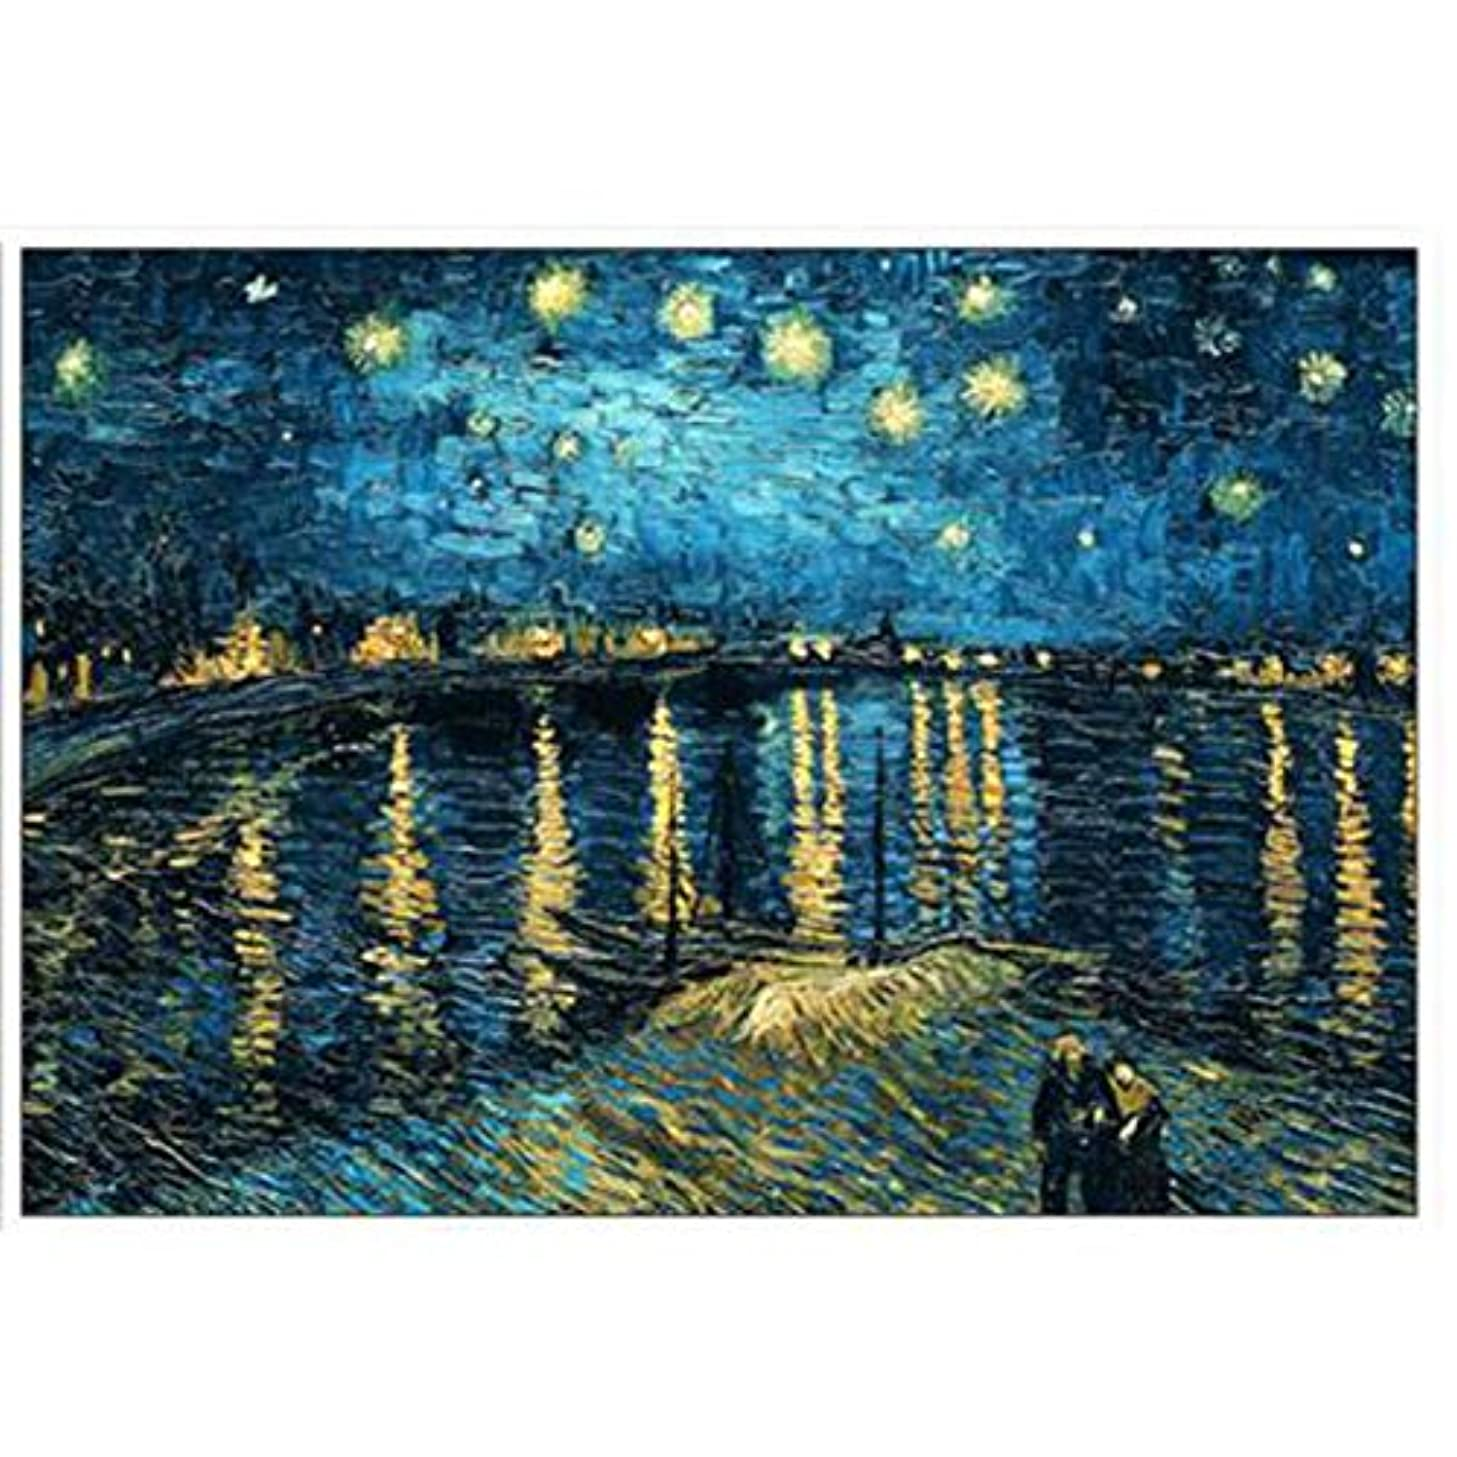 Farsla Starry Night on The Rhone River by Van Gogh 5D DIY Round Full Diamond Painting by Number Kit Mosaics Rhinestone Painting for Wall Decor 12X16inch